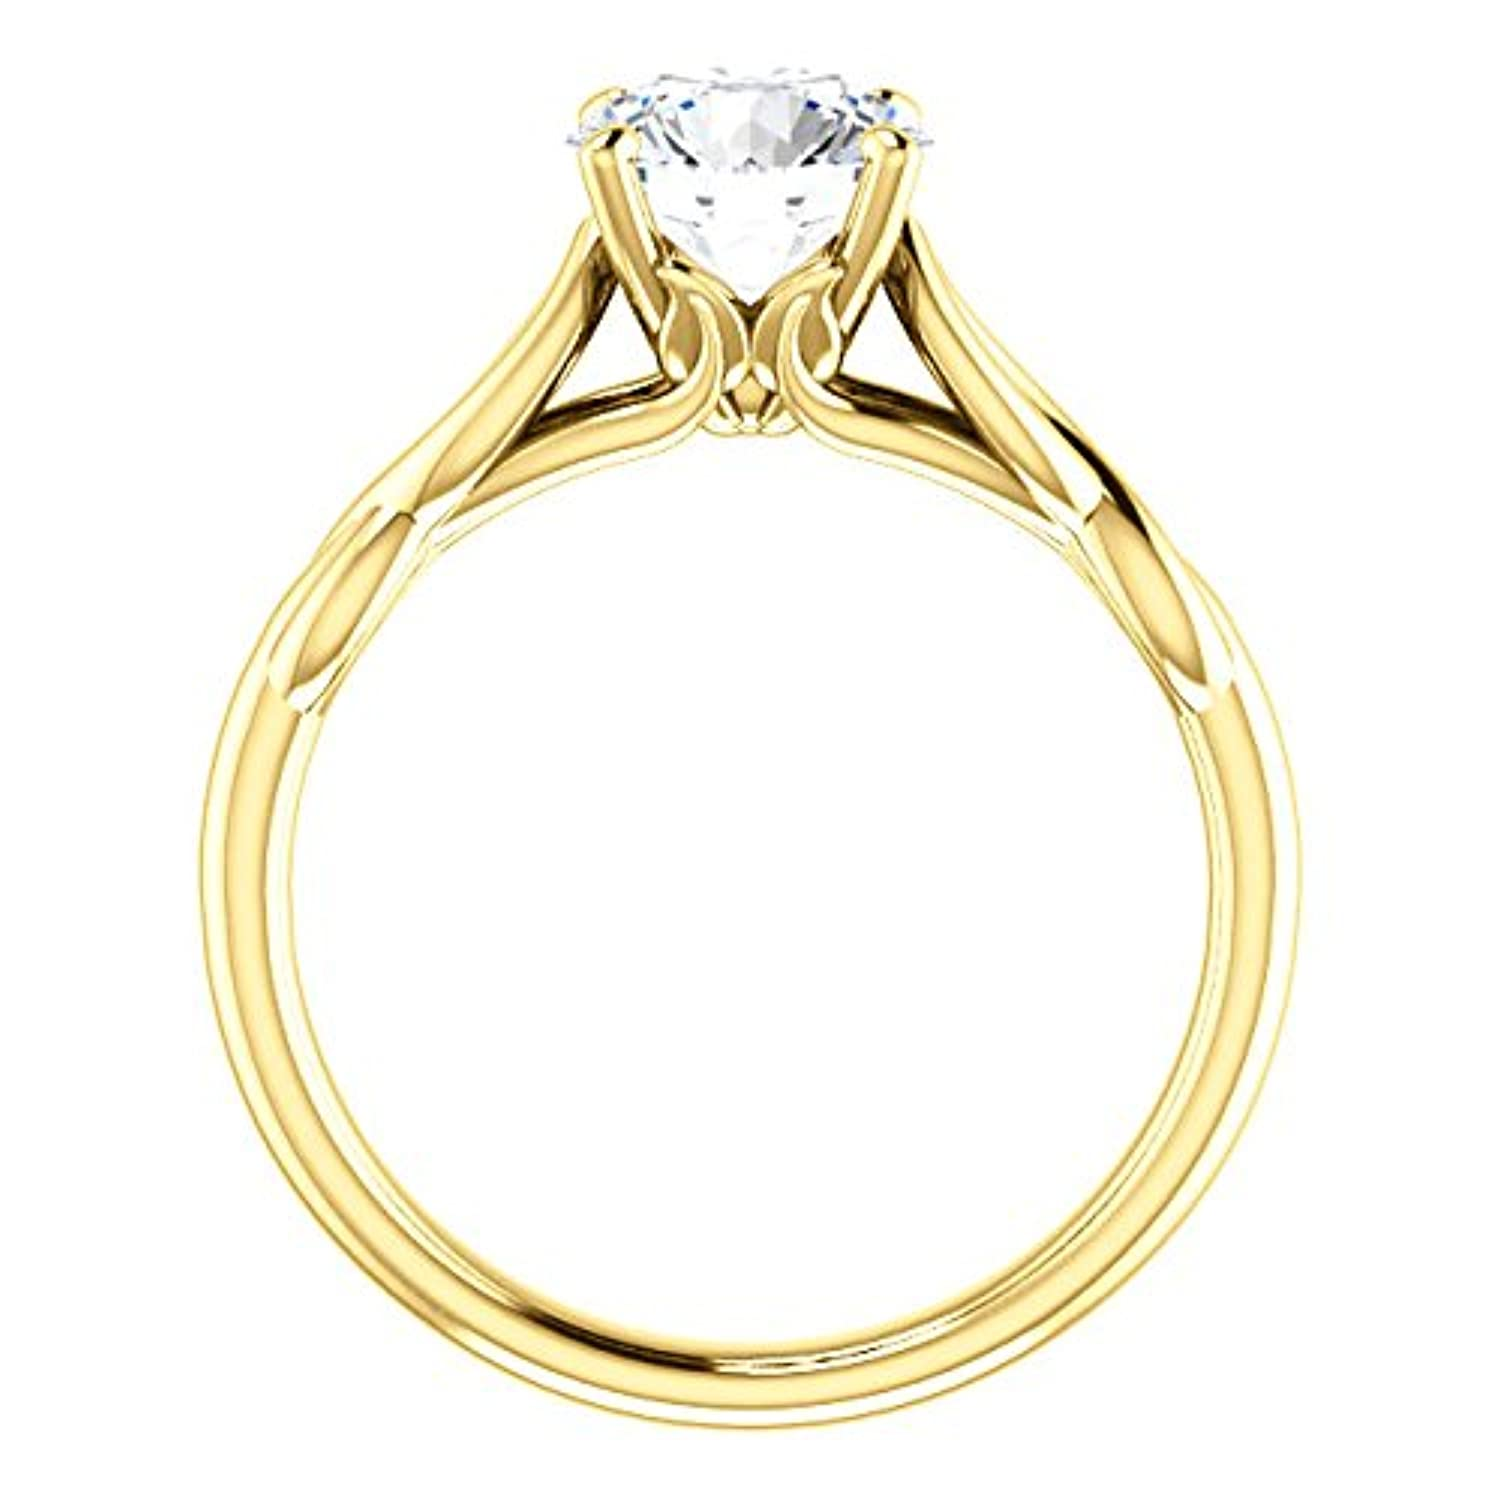 1 Carat Forever One Moissanite Near Colorless Unlimited Style Solitaire Engagement Ring in 14k White or Yellow Gold